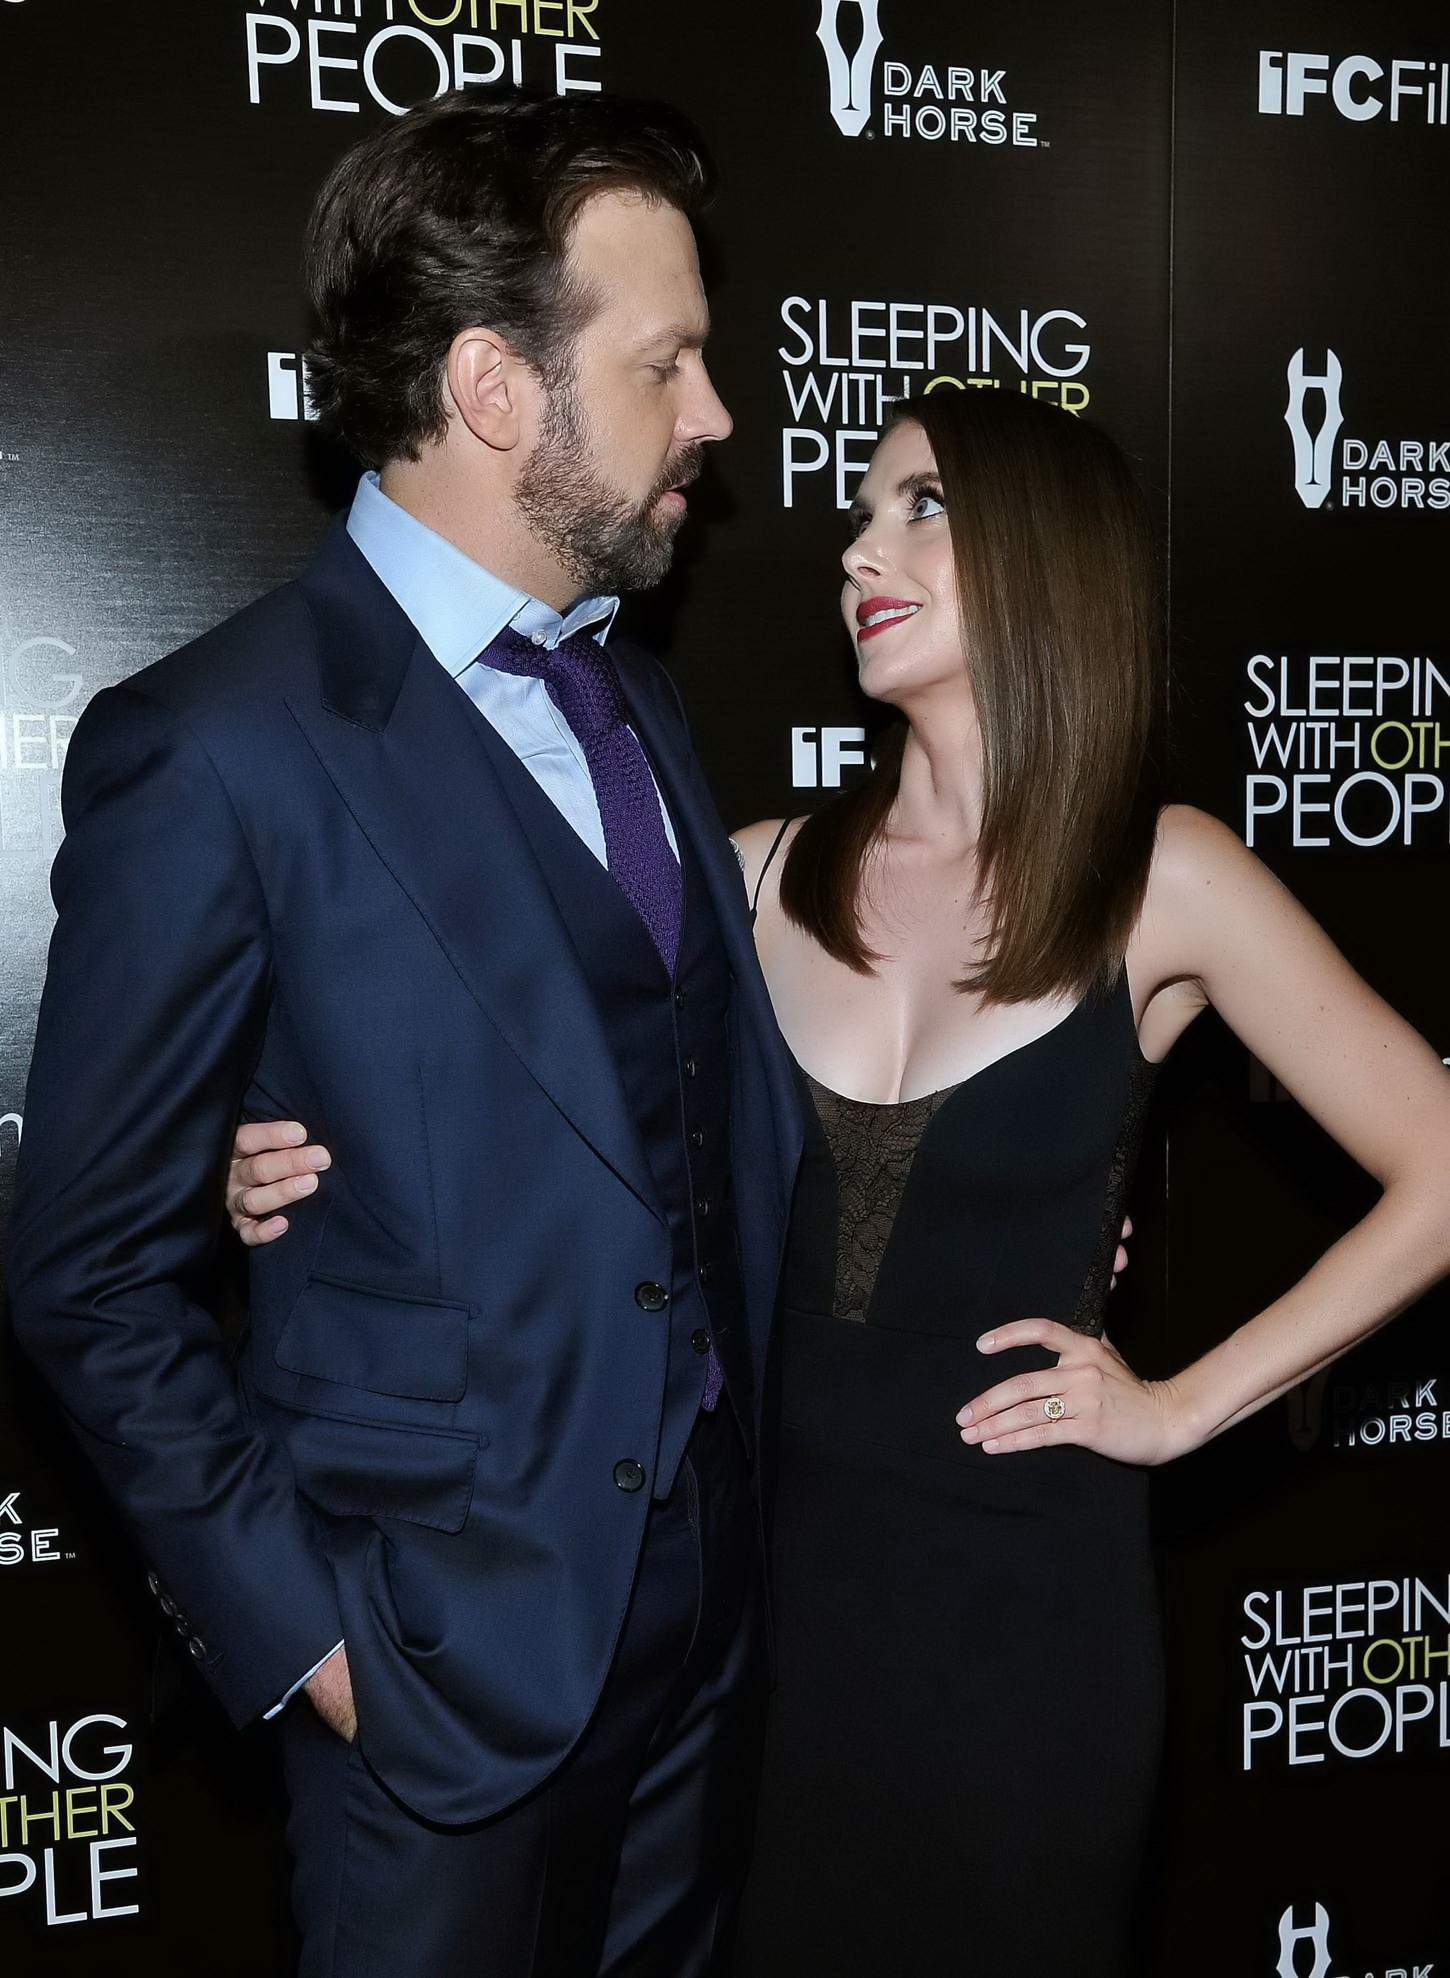 Alison brie with other people 02